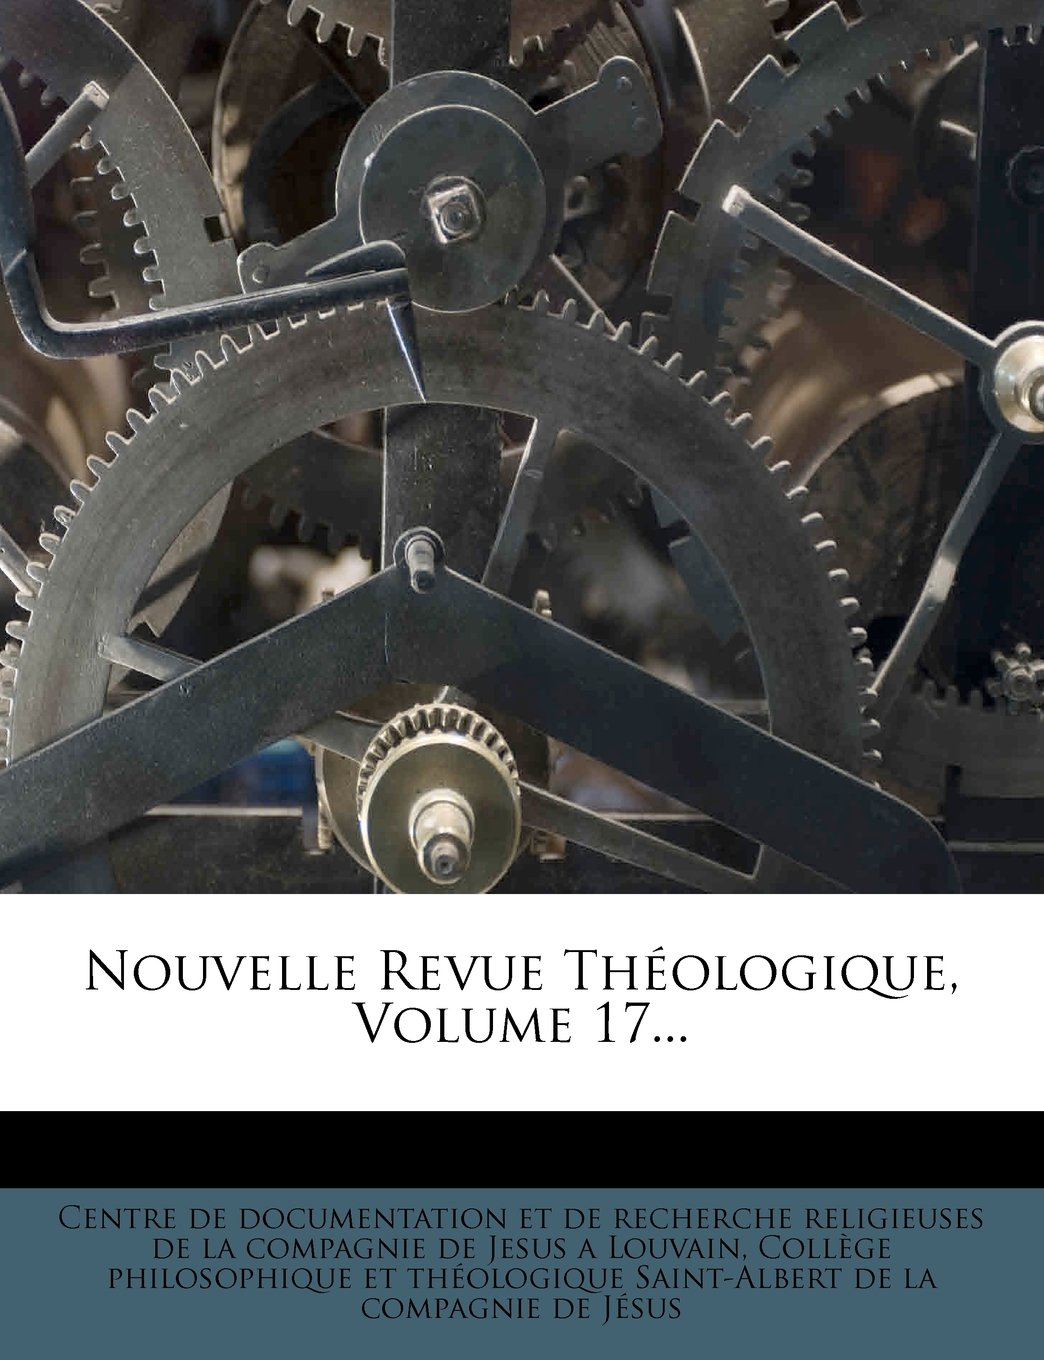 Download Nouvelle Revue Theologique, Volume 17... (French Edition) PDF Text fb2 ebook